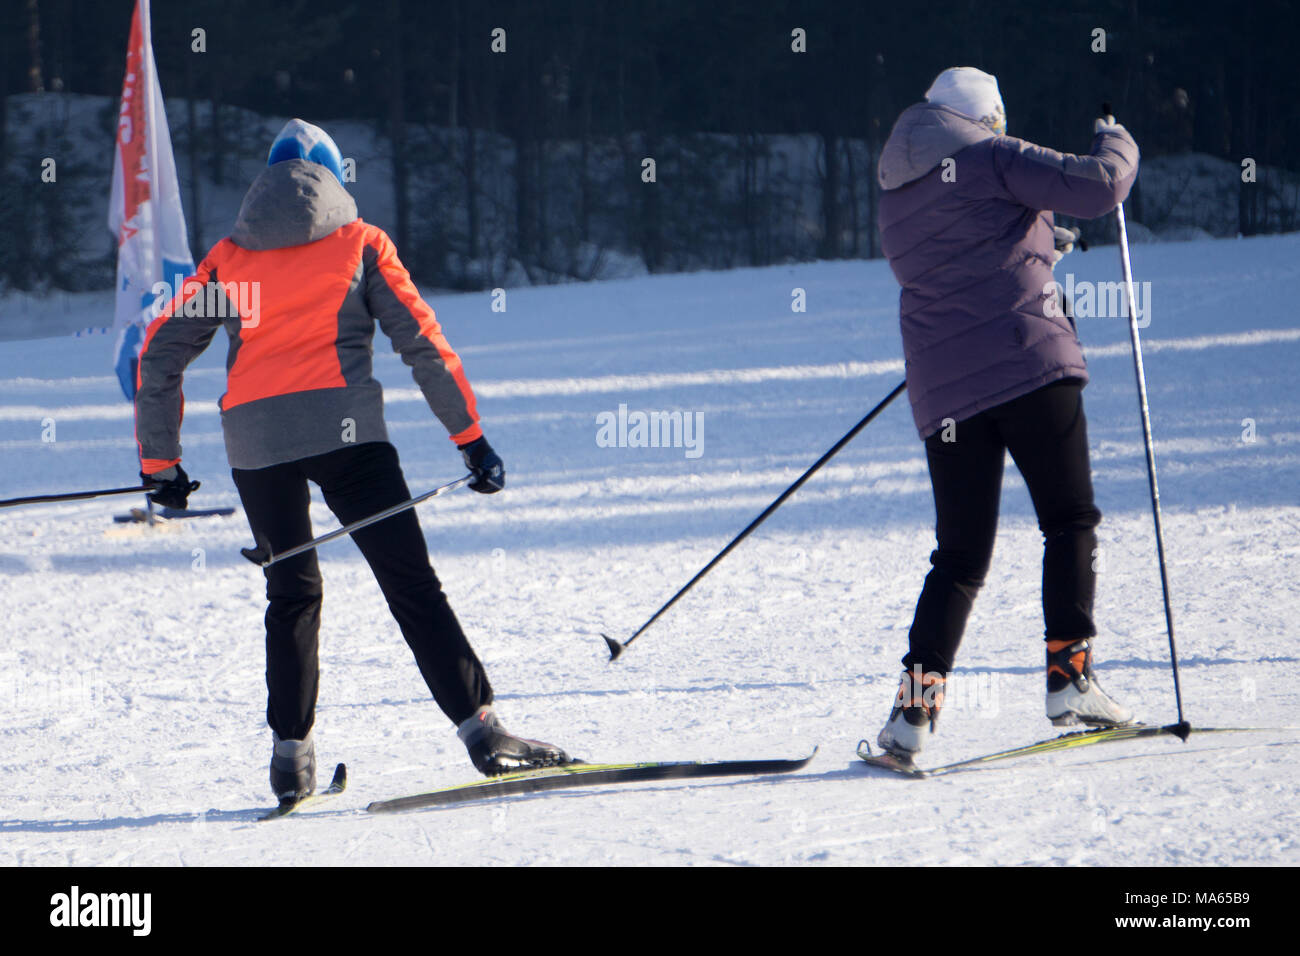 Woman and man skiers in blue suits and helmets prepare for slope at winter in snowy mountains - Stock Image